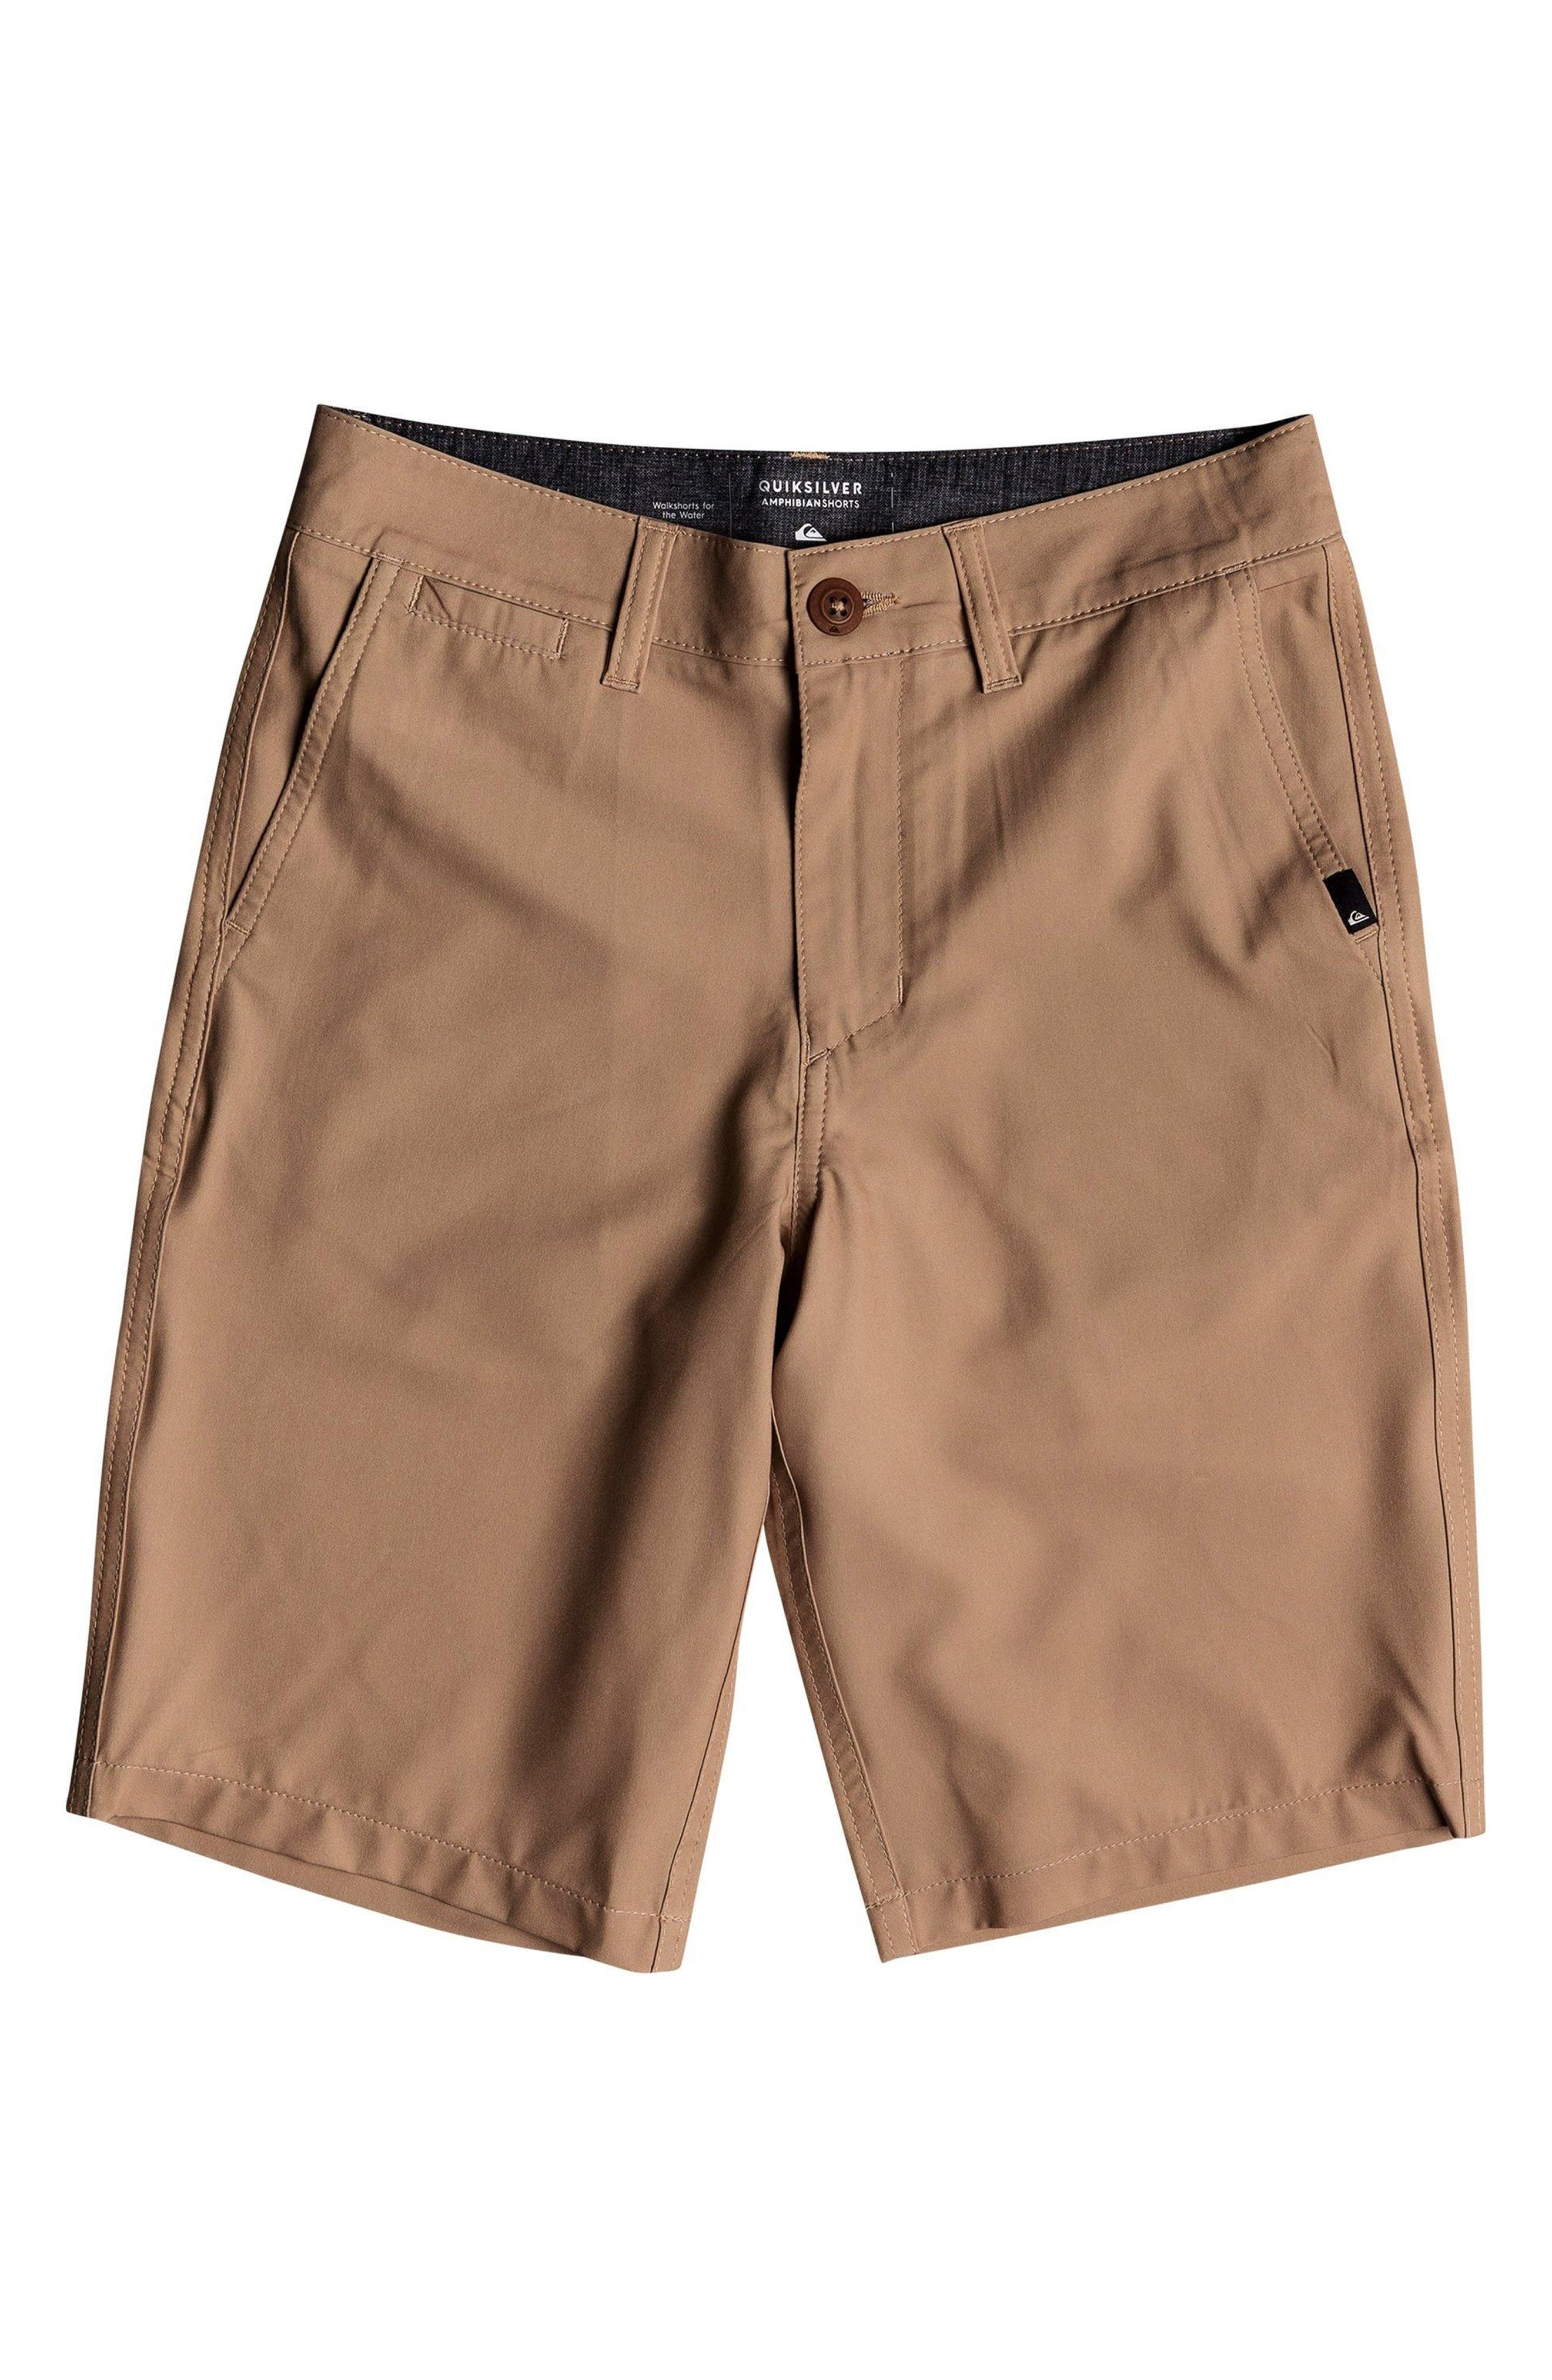 Union Amphibian Hybrid Shorts,                         Main,                         color,